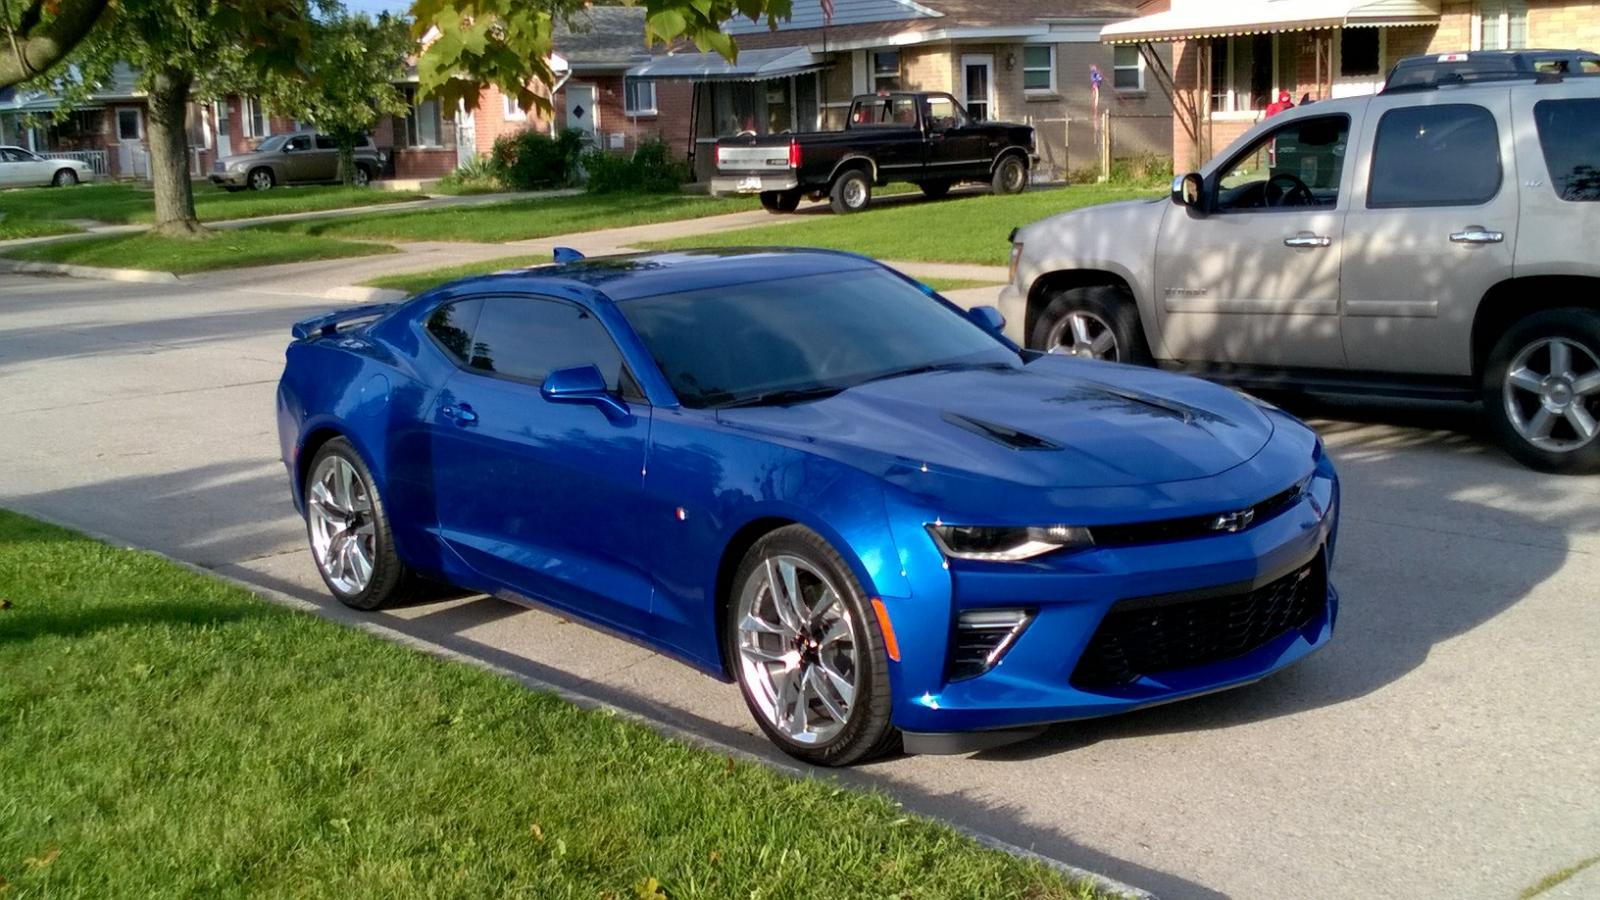 1000 incentive 2017 camaro ss gm employee lease camaro6. Black Bedroom Furniture Sets. Home Design Ideas